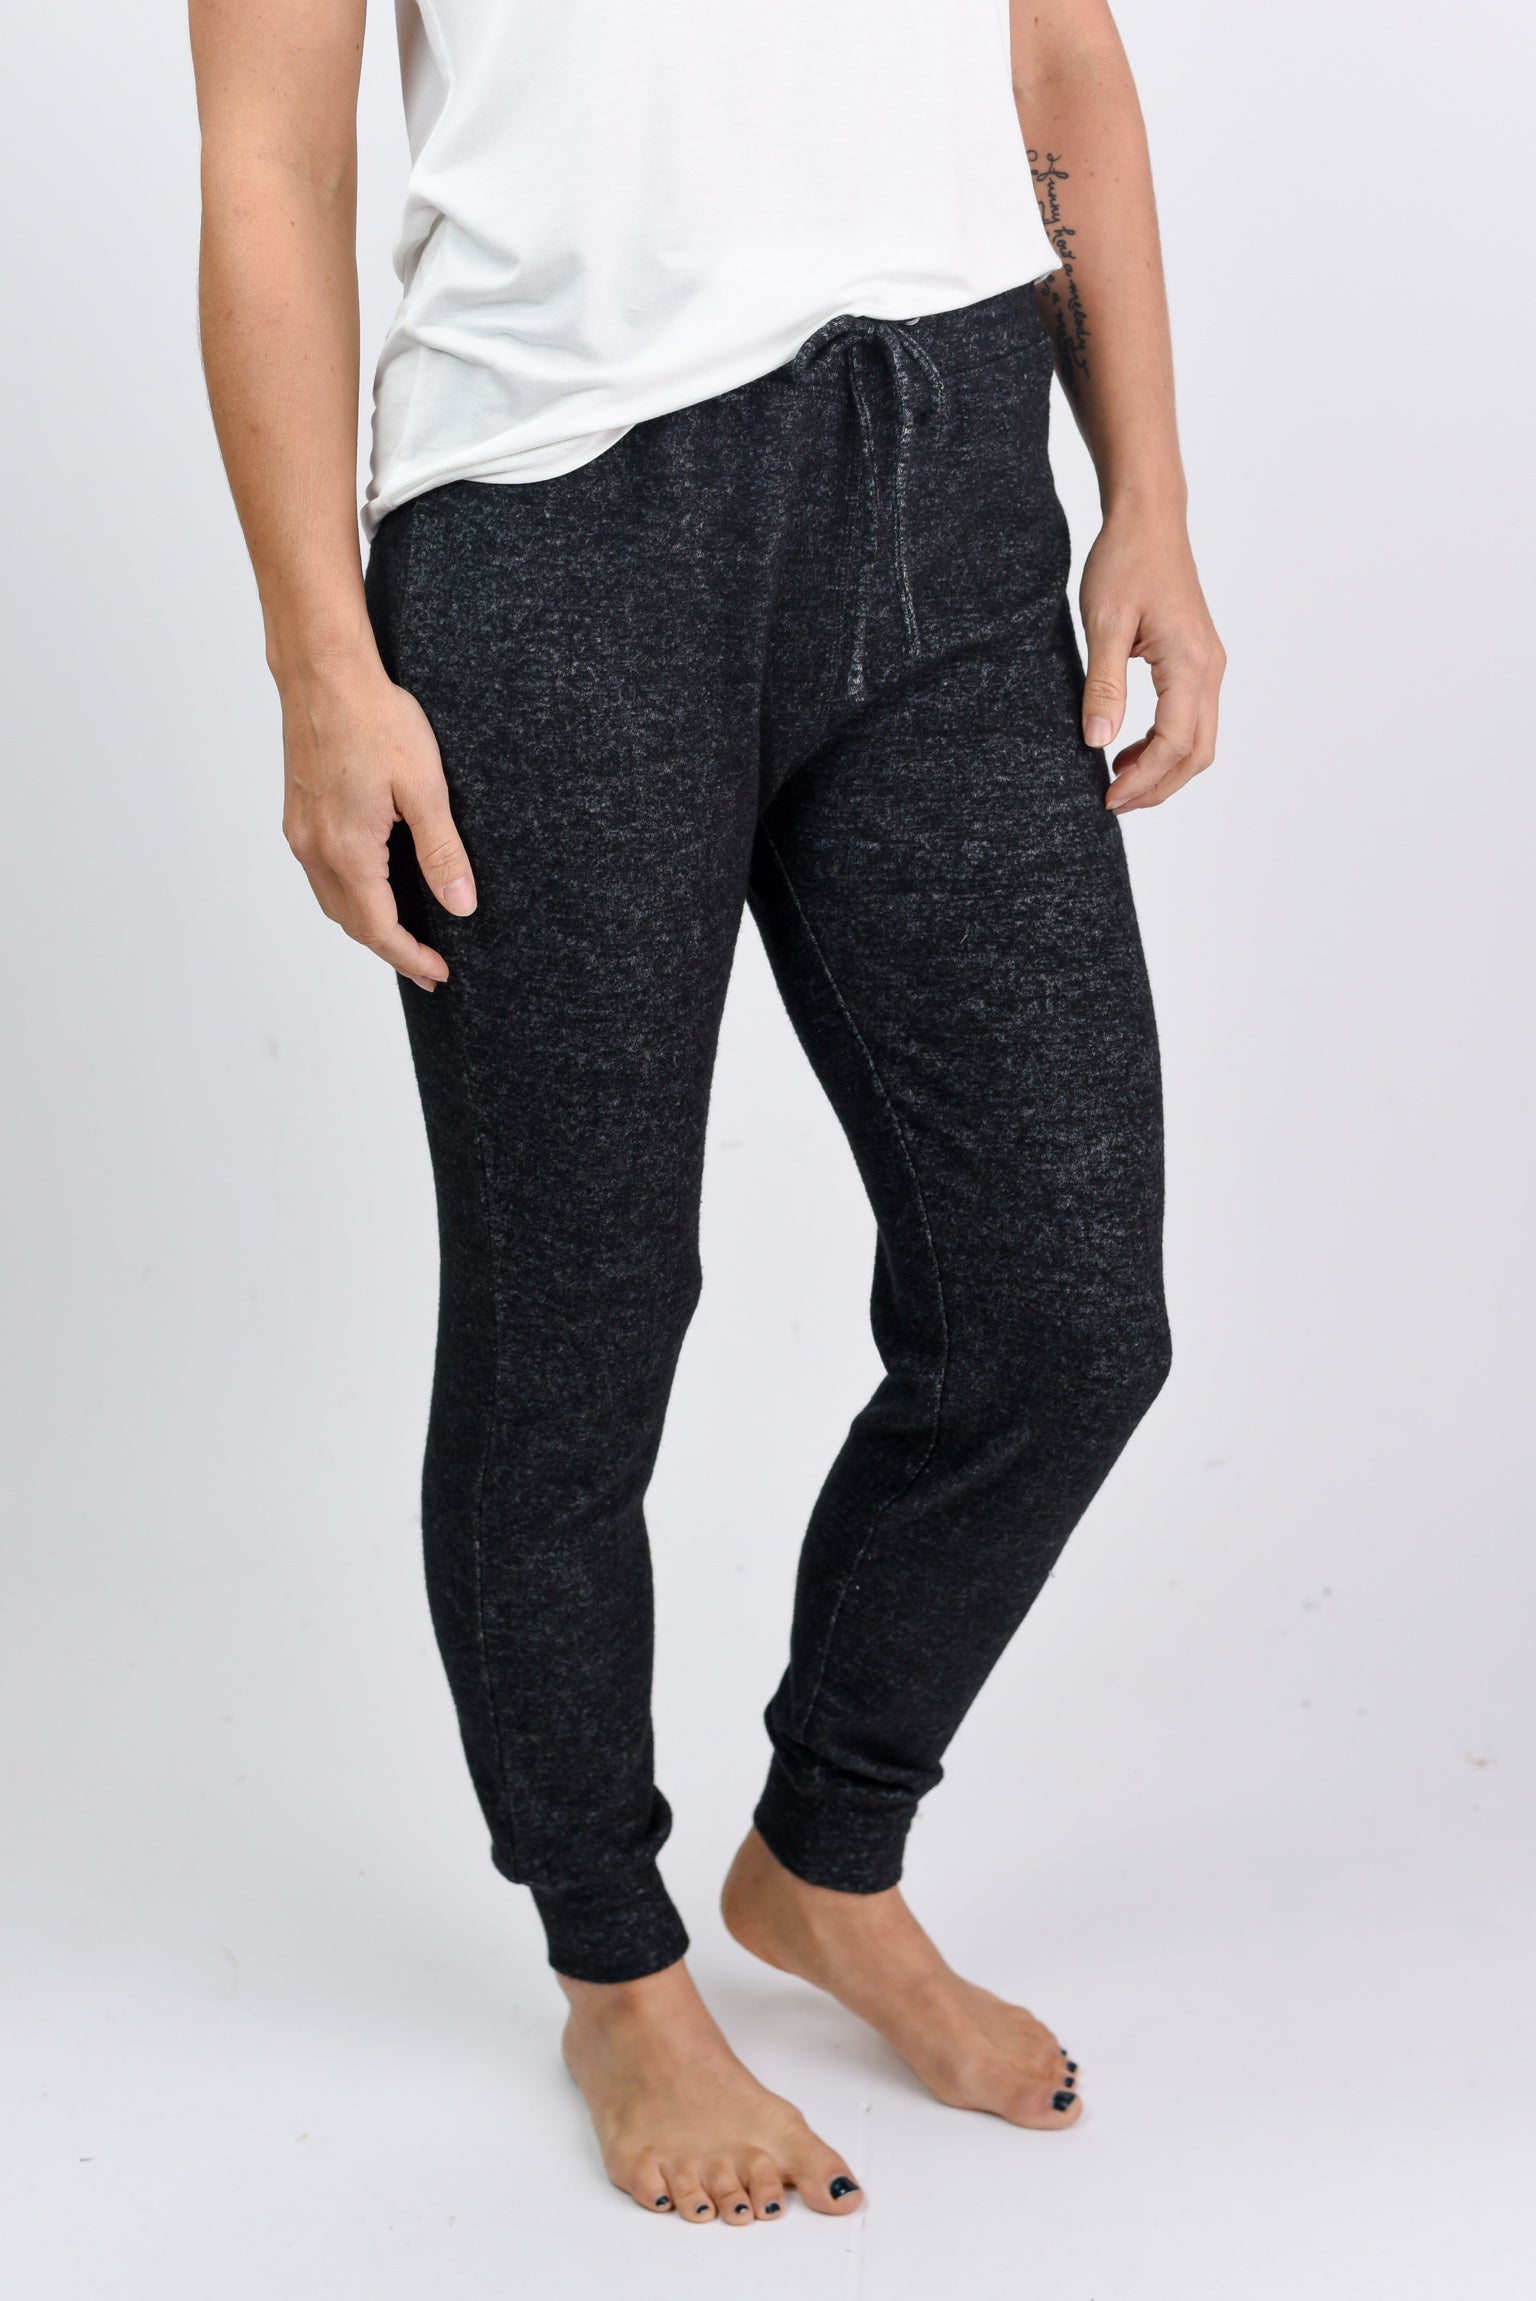 Cuddle Session Cozy Joggers- Heather Black